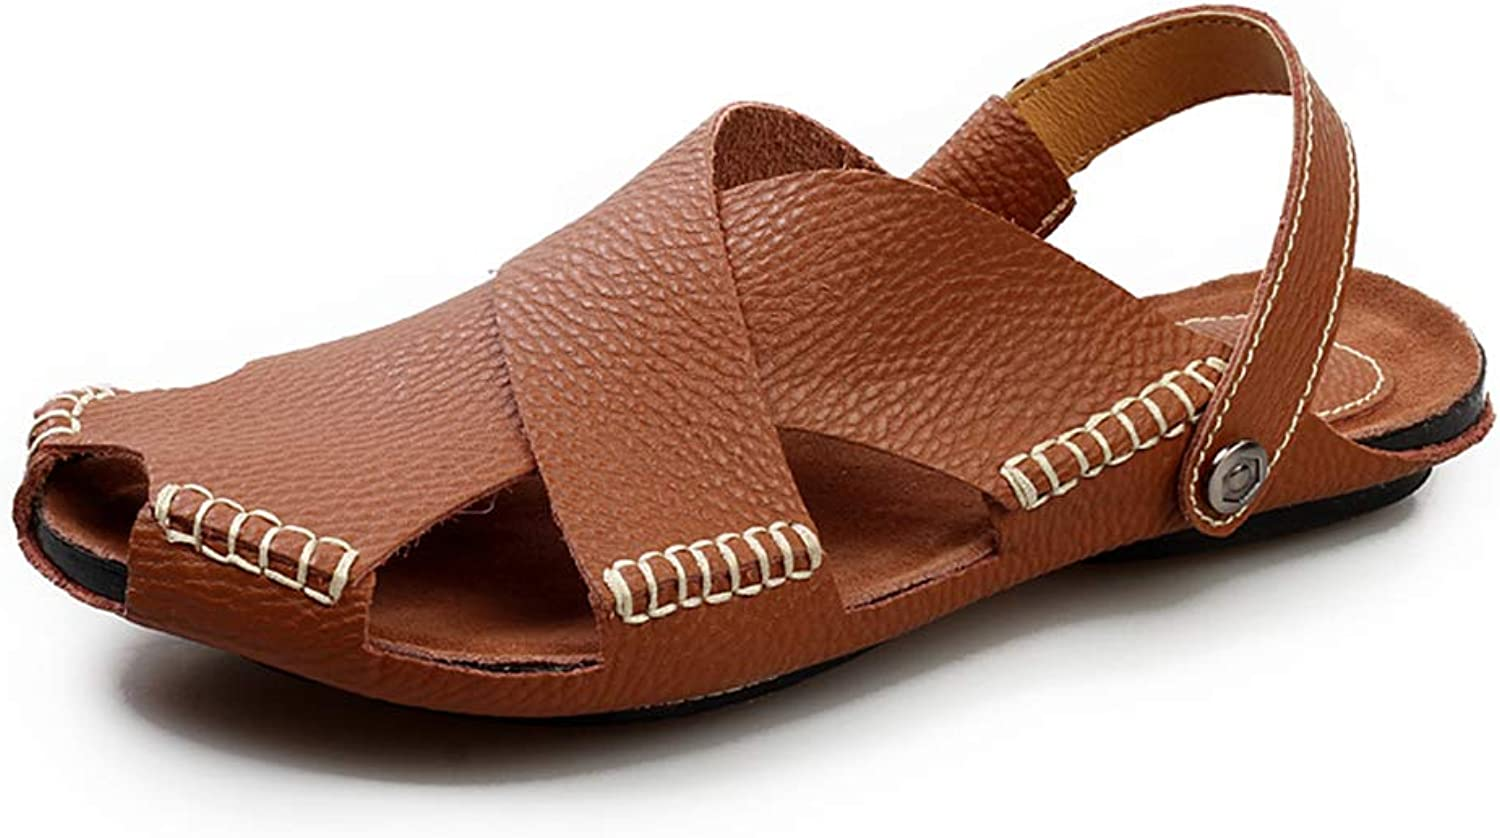 Comfy Sandals Very Lightweight Slide Sandals Simple and Stylish Mens Walking Soft Breathable Non Slip Slippers